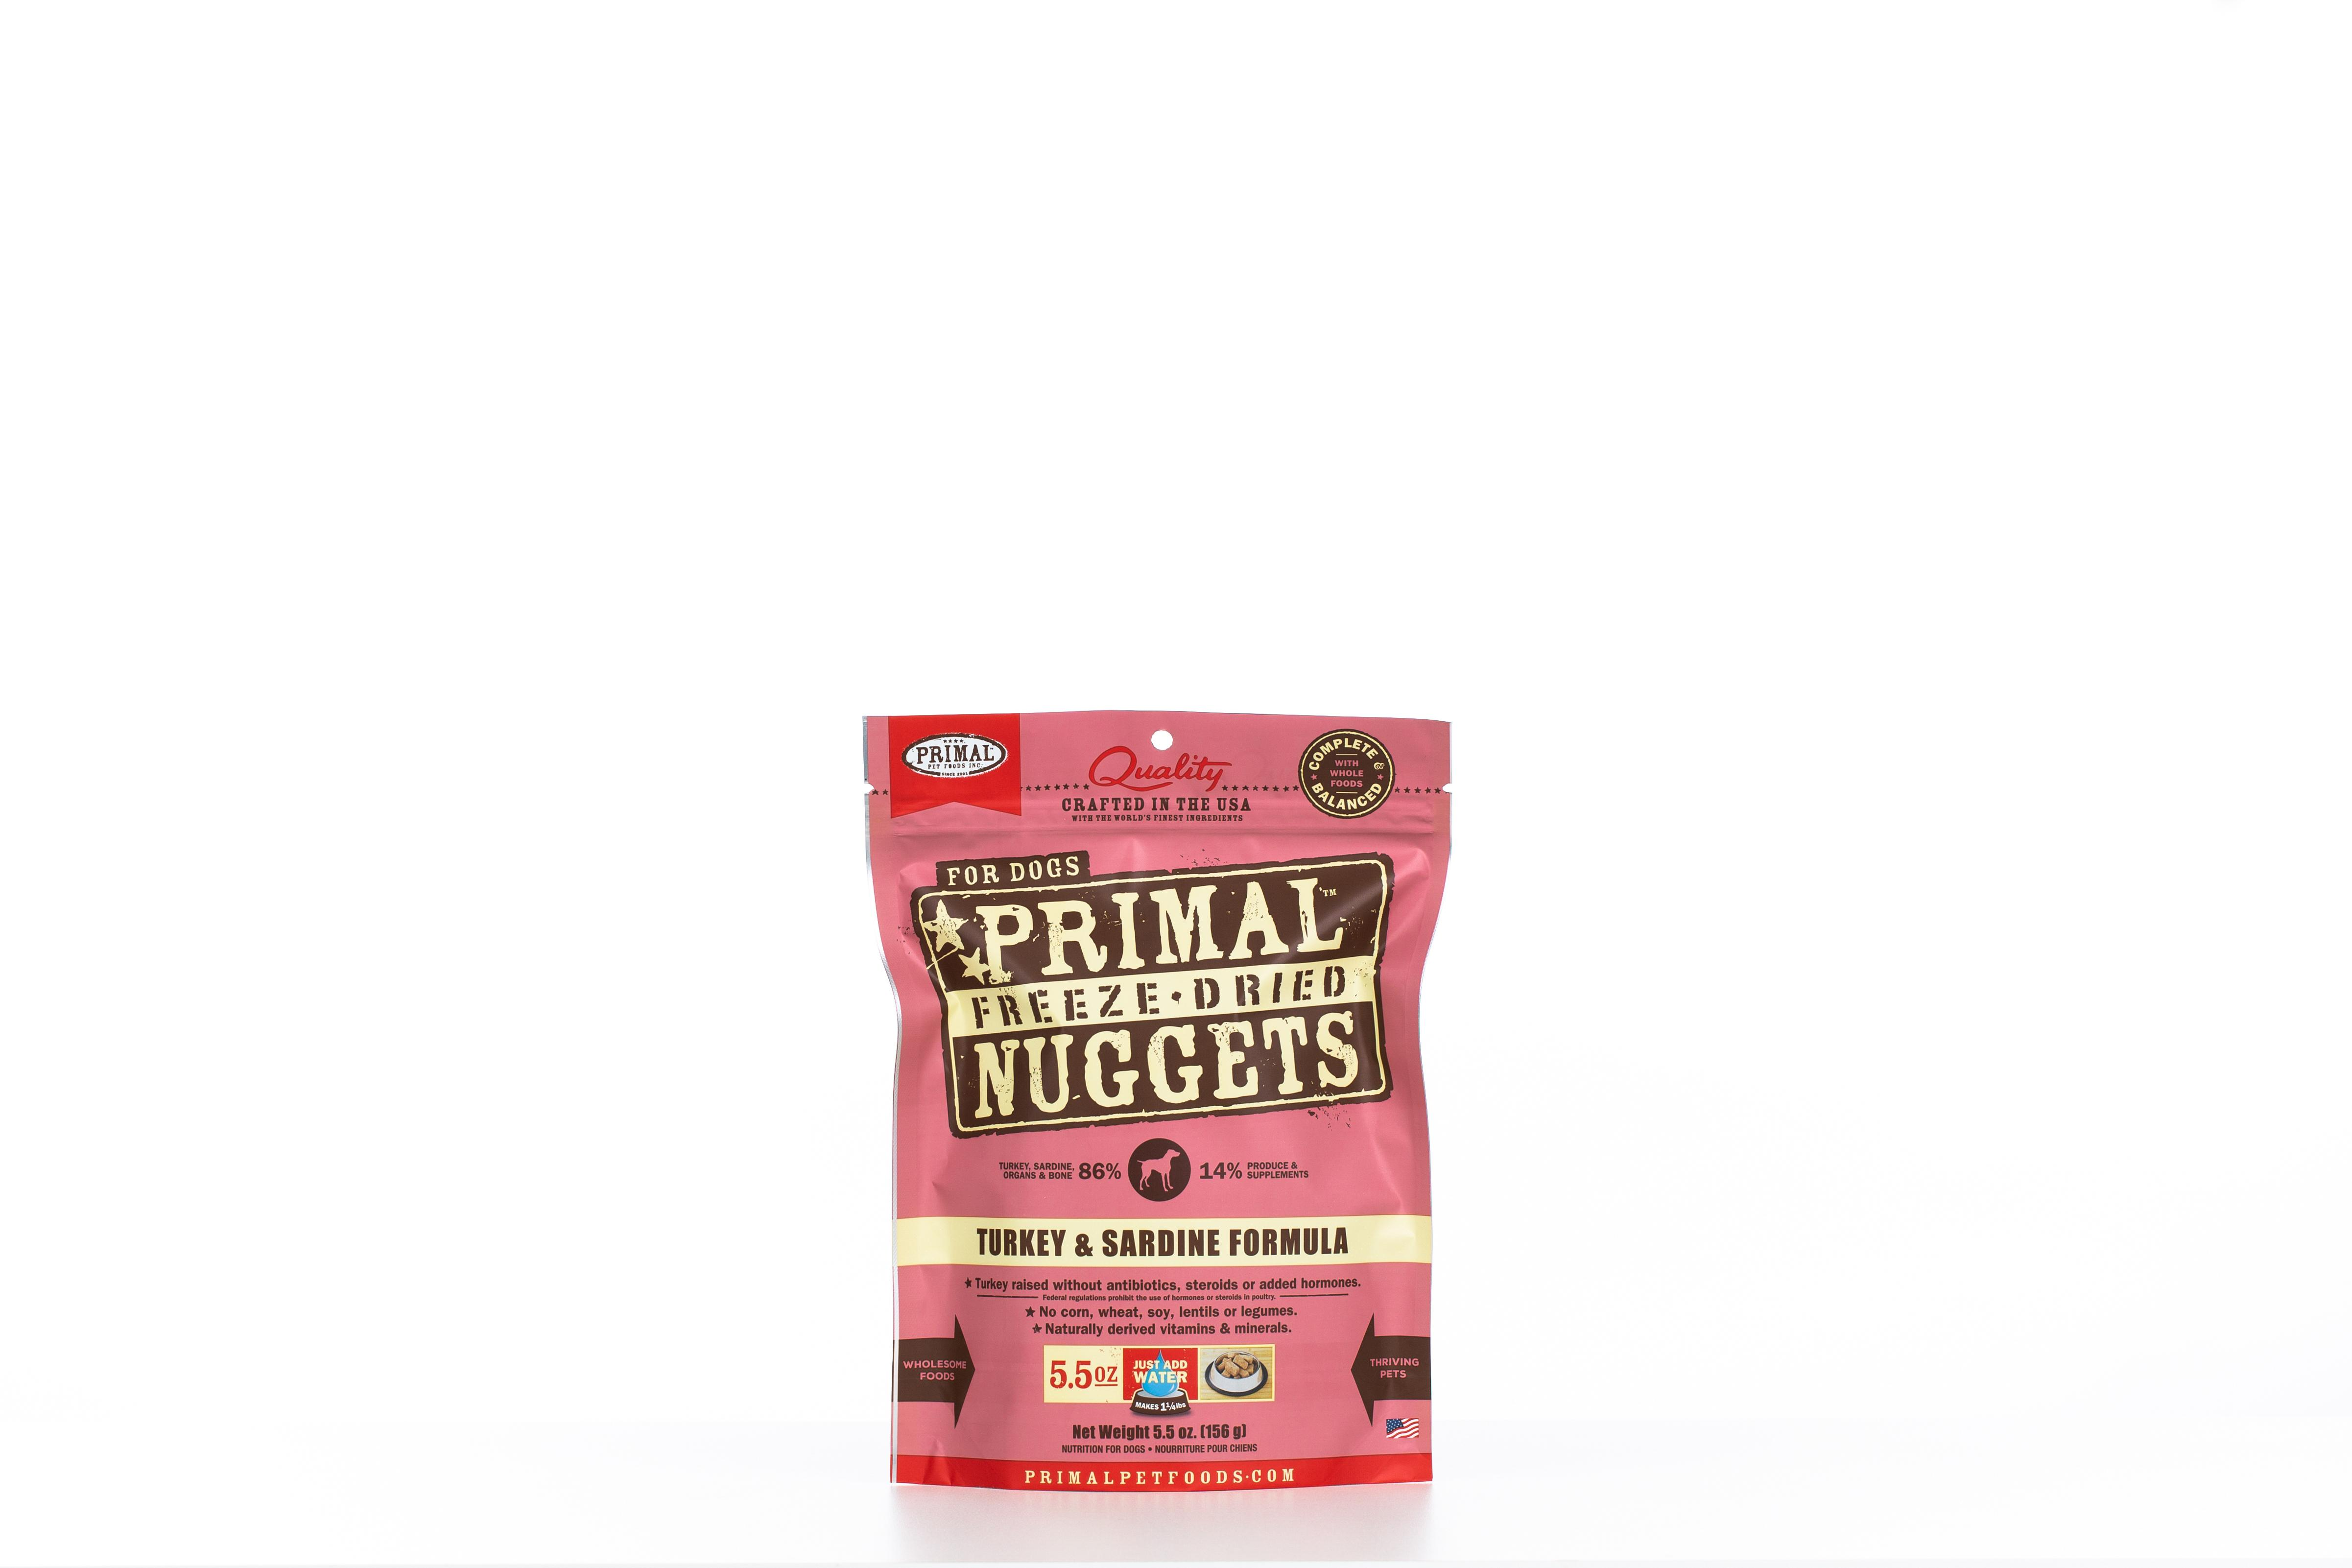 Primal Raw Freeze-Dried Nuggets Turkey & Sardine Formula Dog Food Image